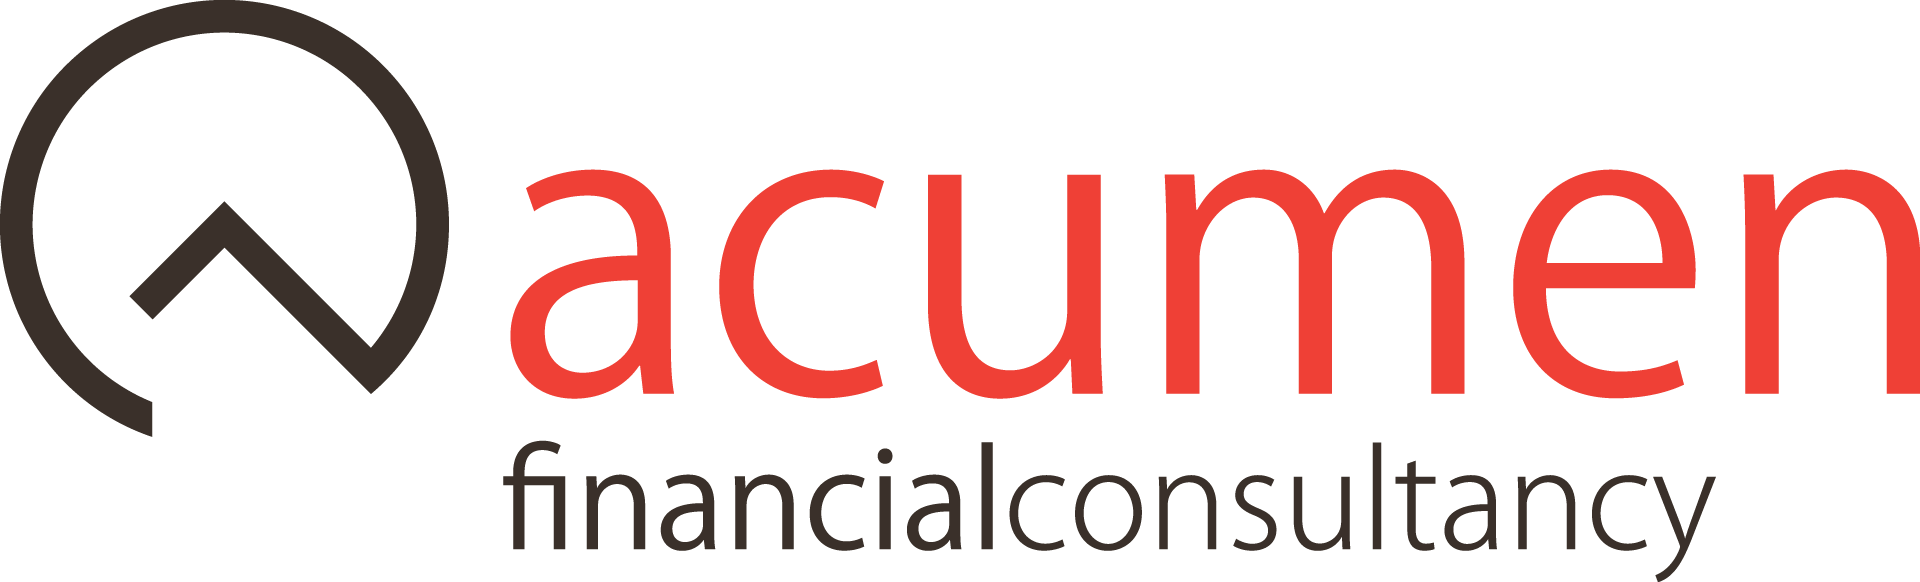 m a and growth capital acumen financial consultancy